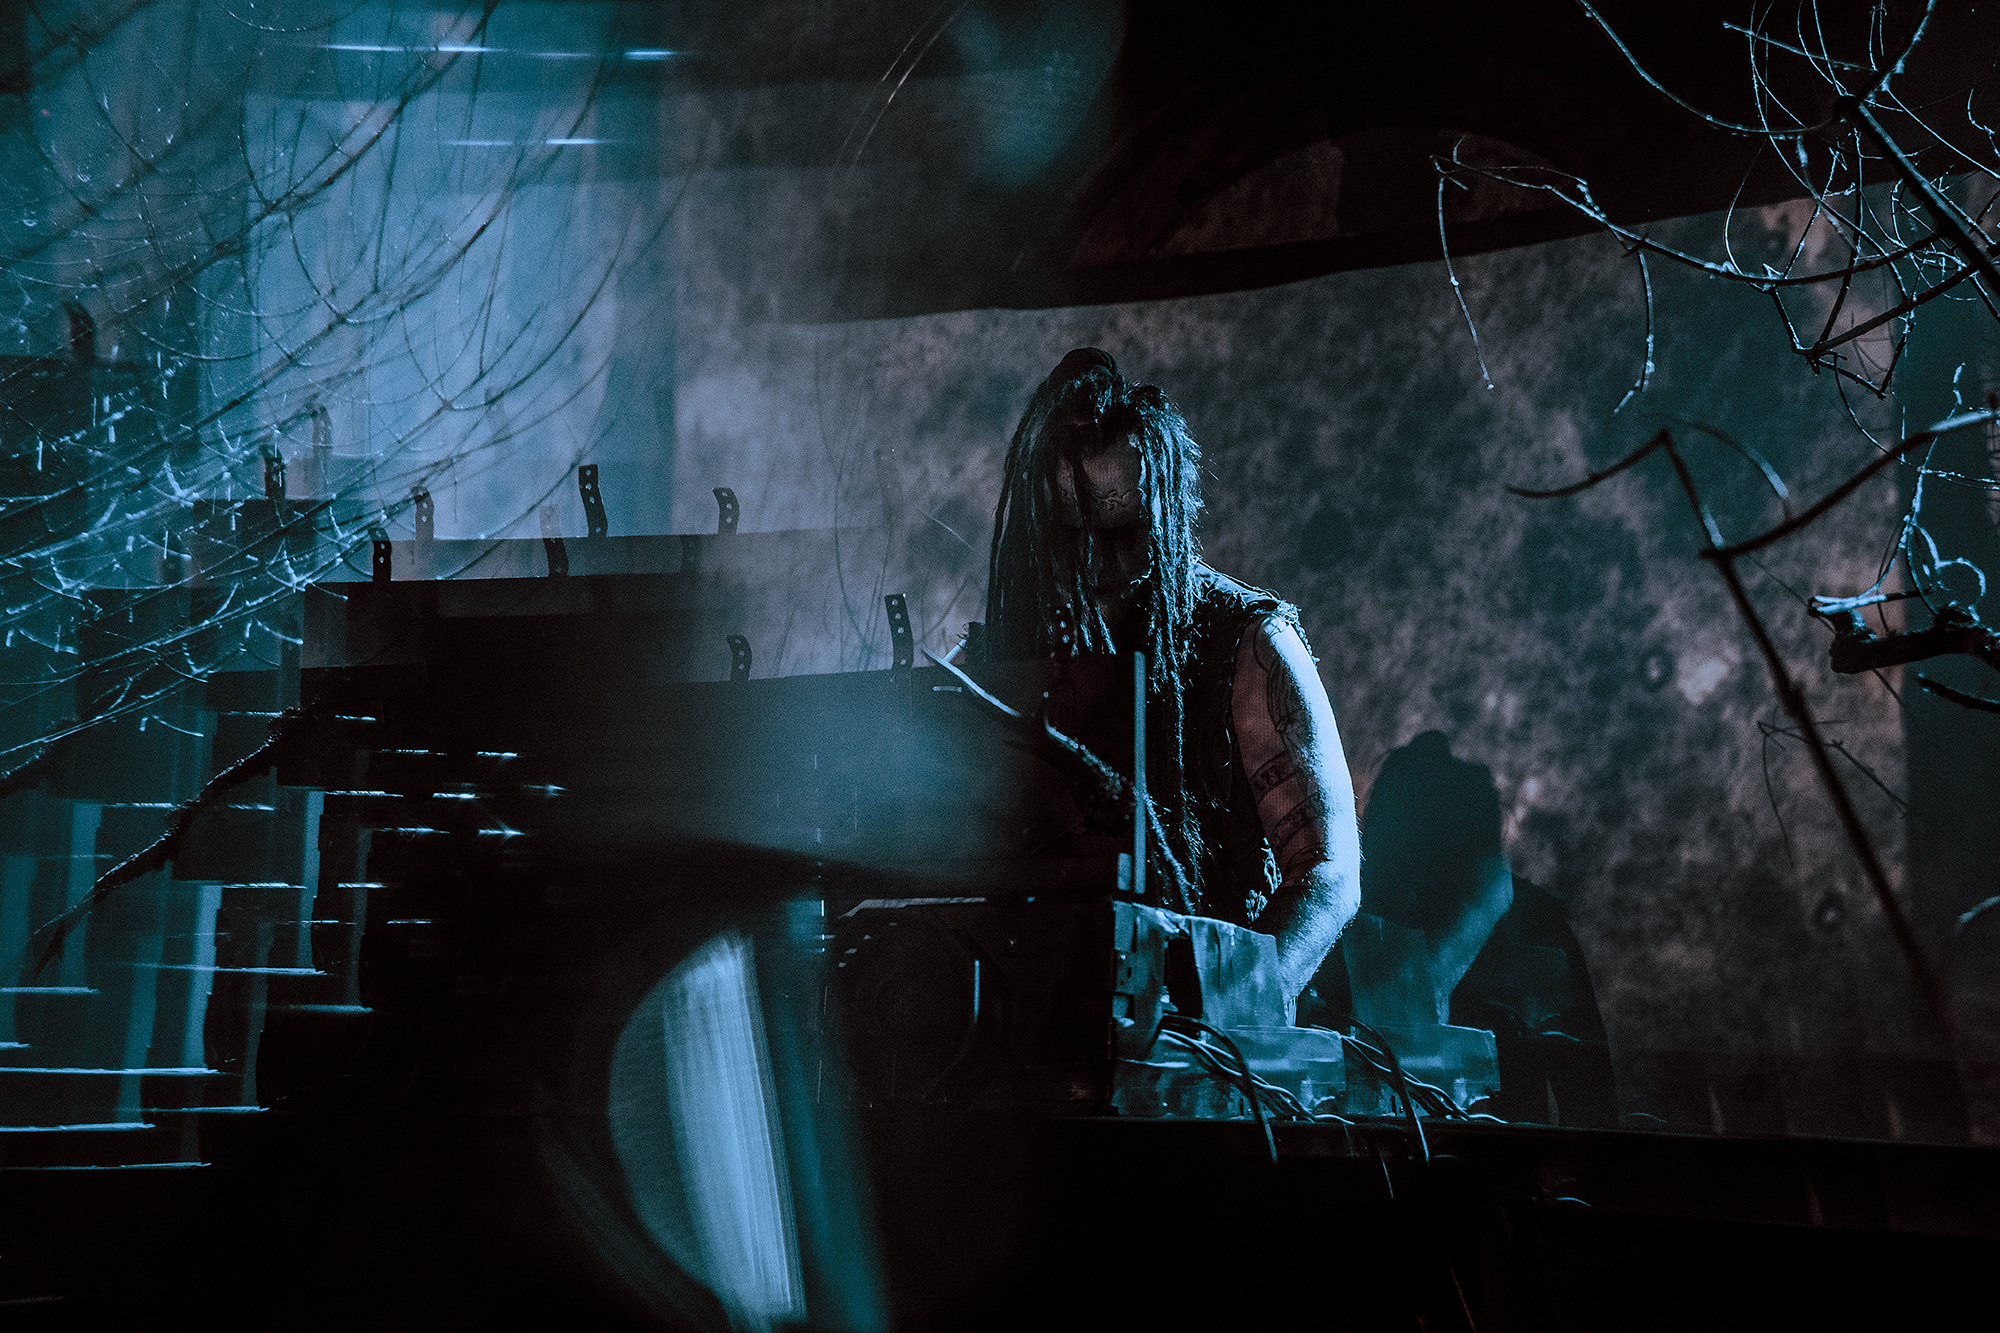 Mortiis at the Lodge Room, Los Angeles, CA  2019.04.07